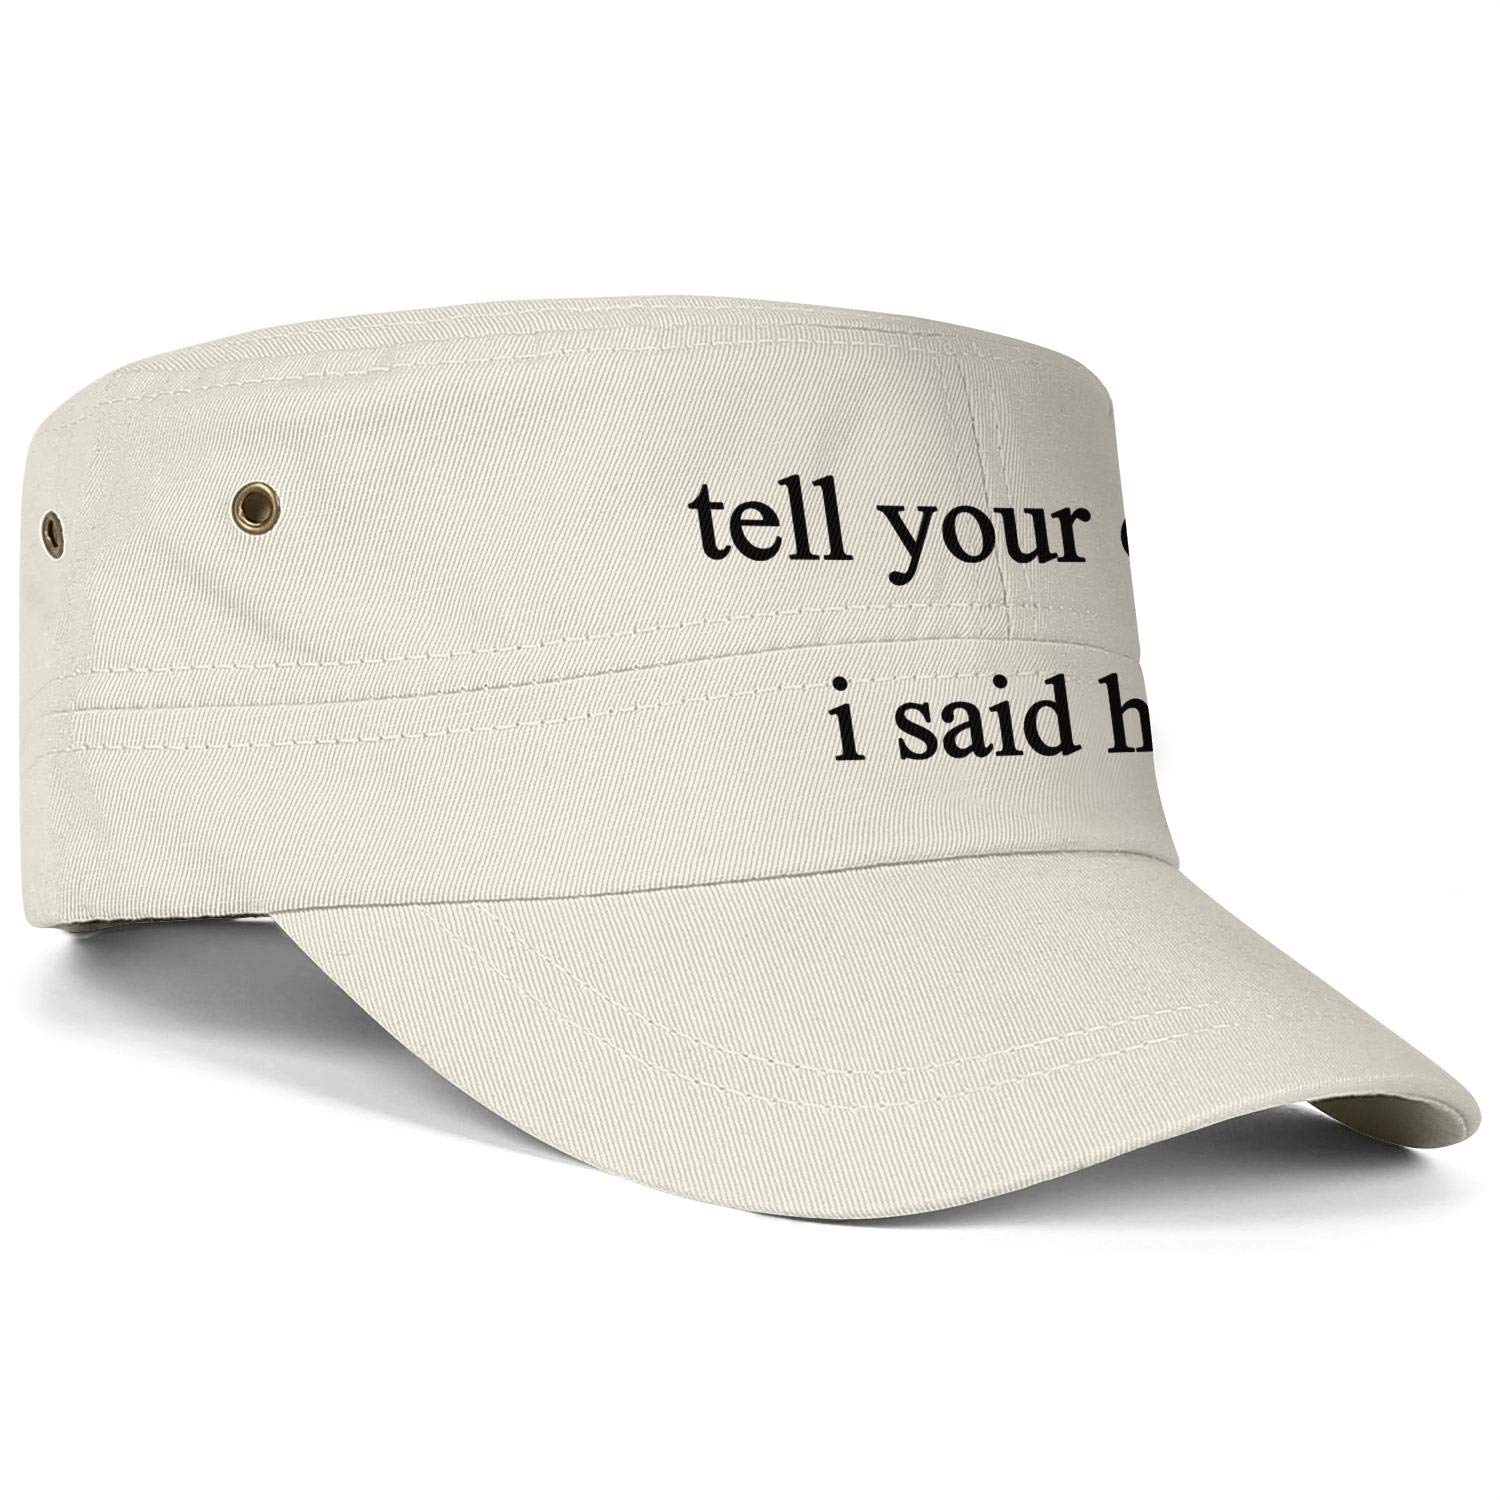 Unisex Military Hat Show Me Your Pitties Pitbull Vintage Flat Top Cadet Army Caps